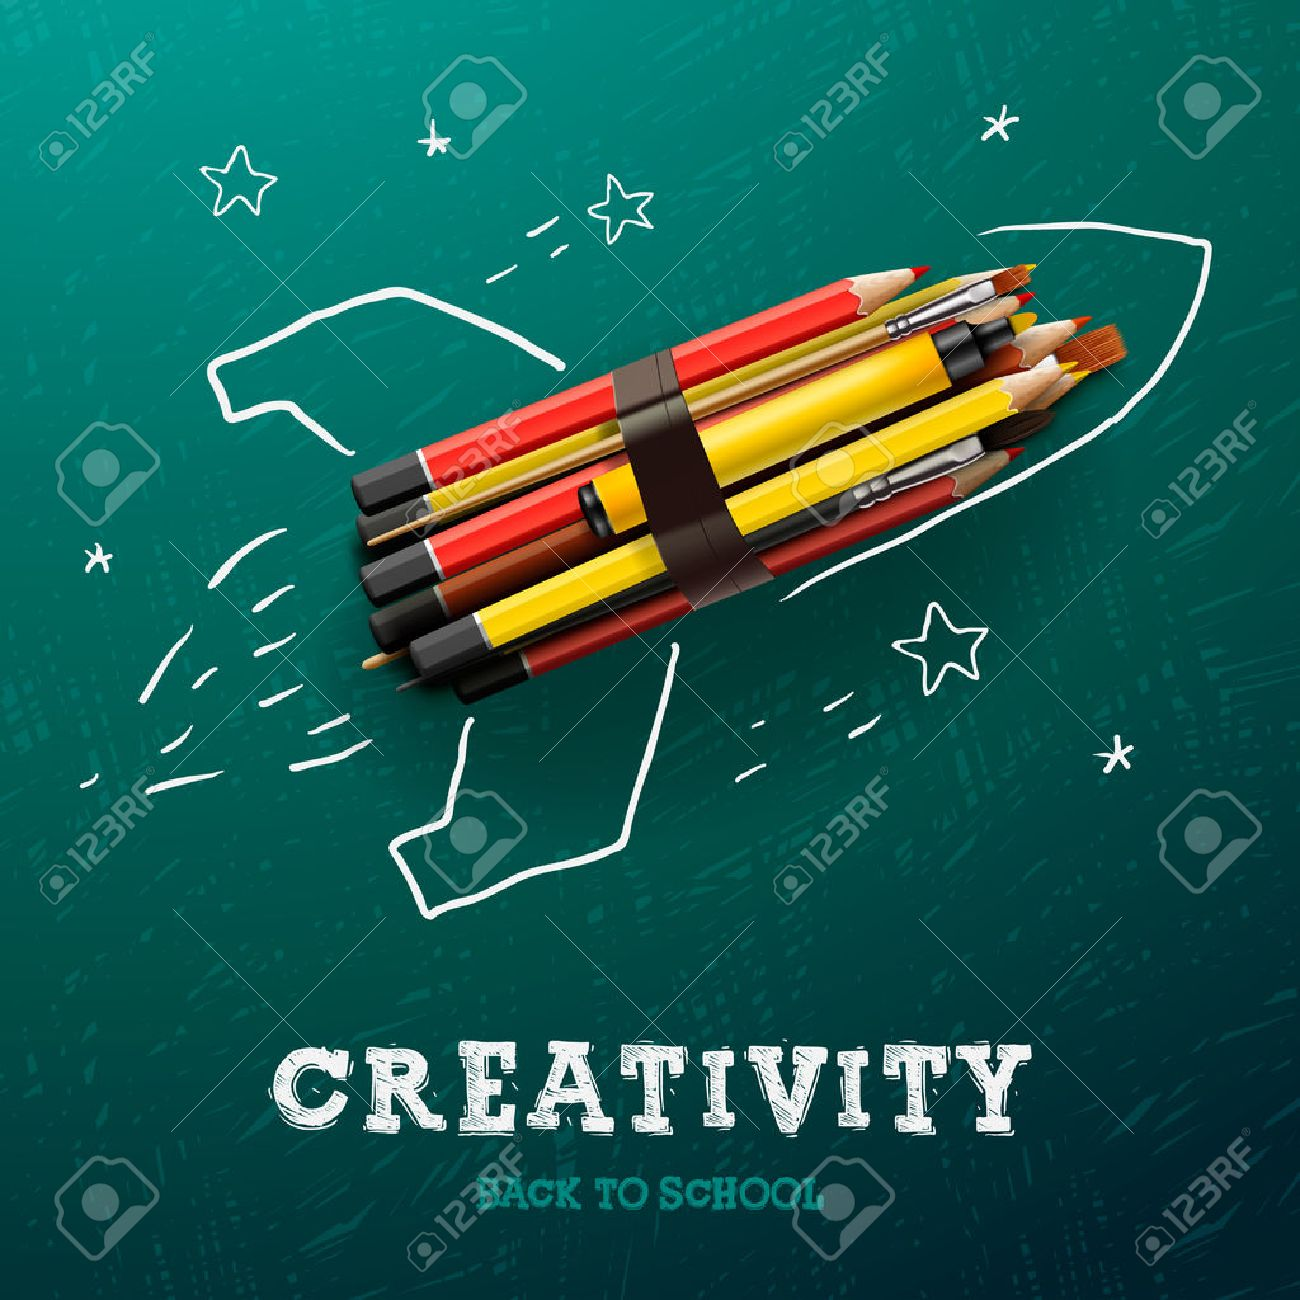 Back to school design background with primary subject matter school - Education Creativity Learning Rocket Ship Launch With Pencils Sketch On The Blackboard